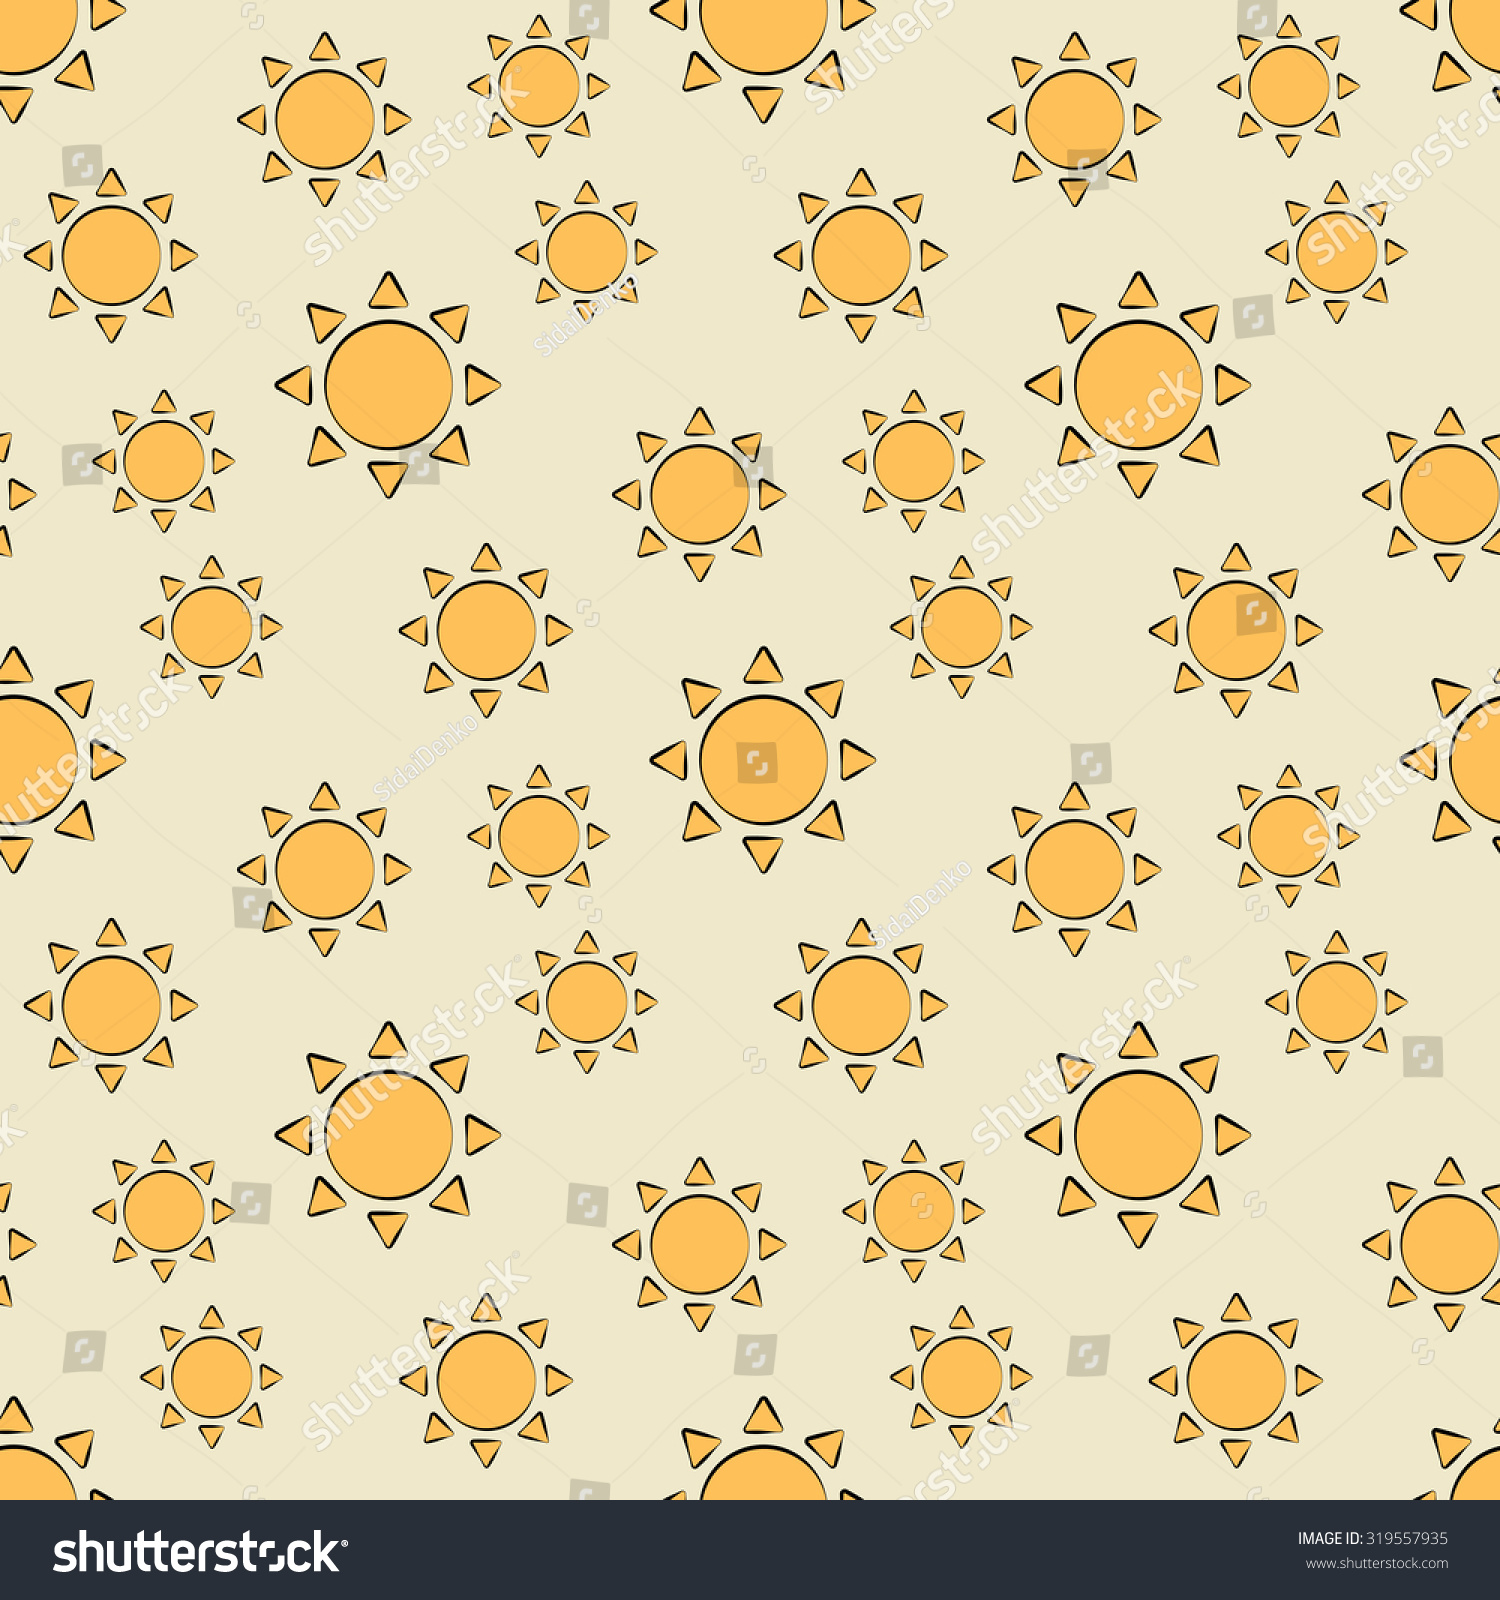 Best 50+ Yellow Cute Wallpaper For Phone - india's wallpaper